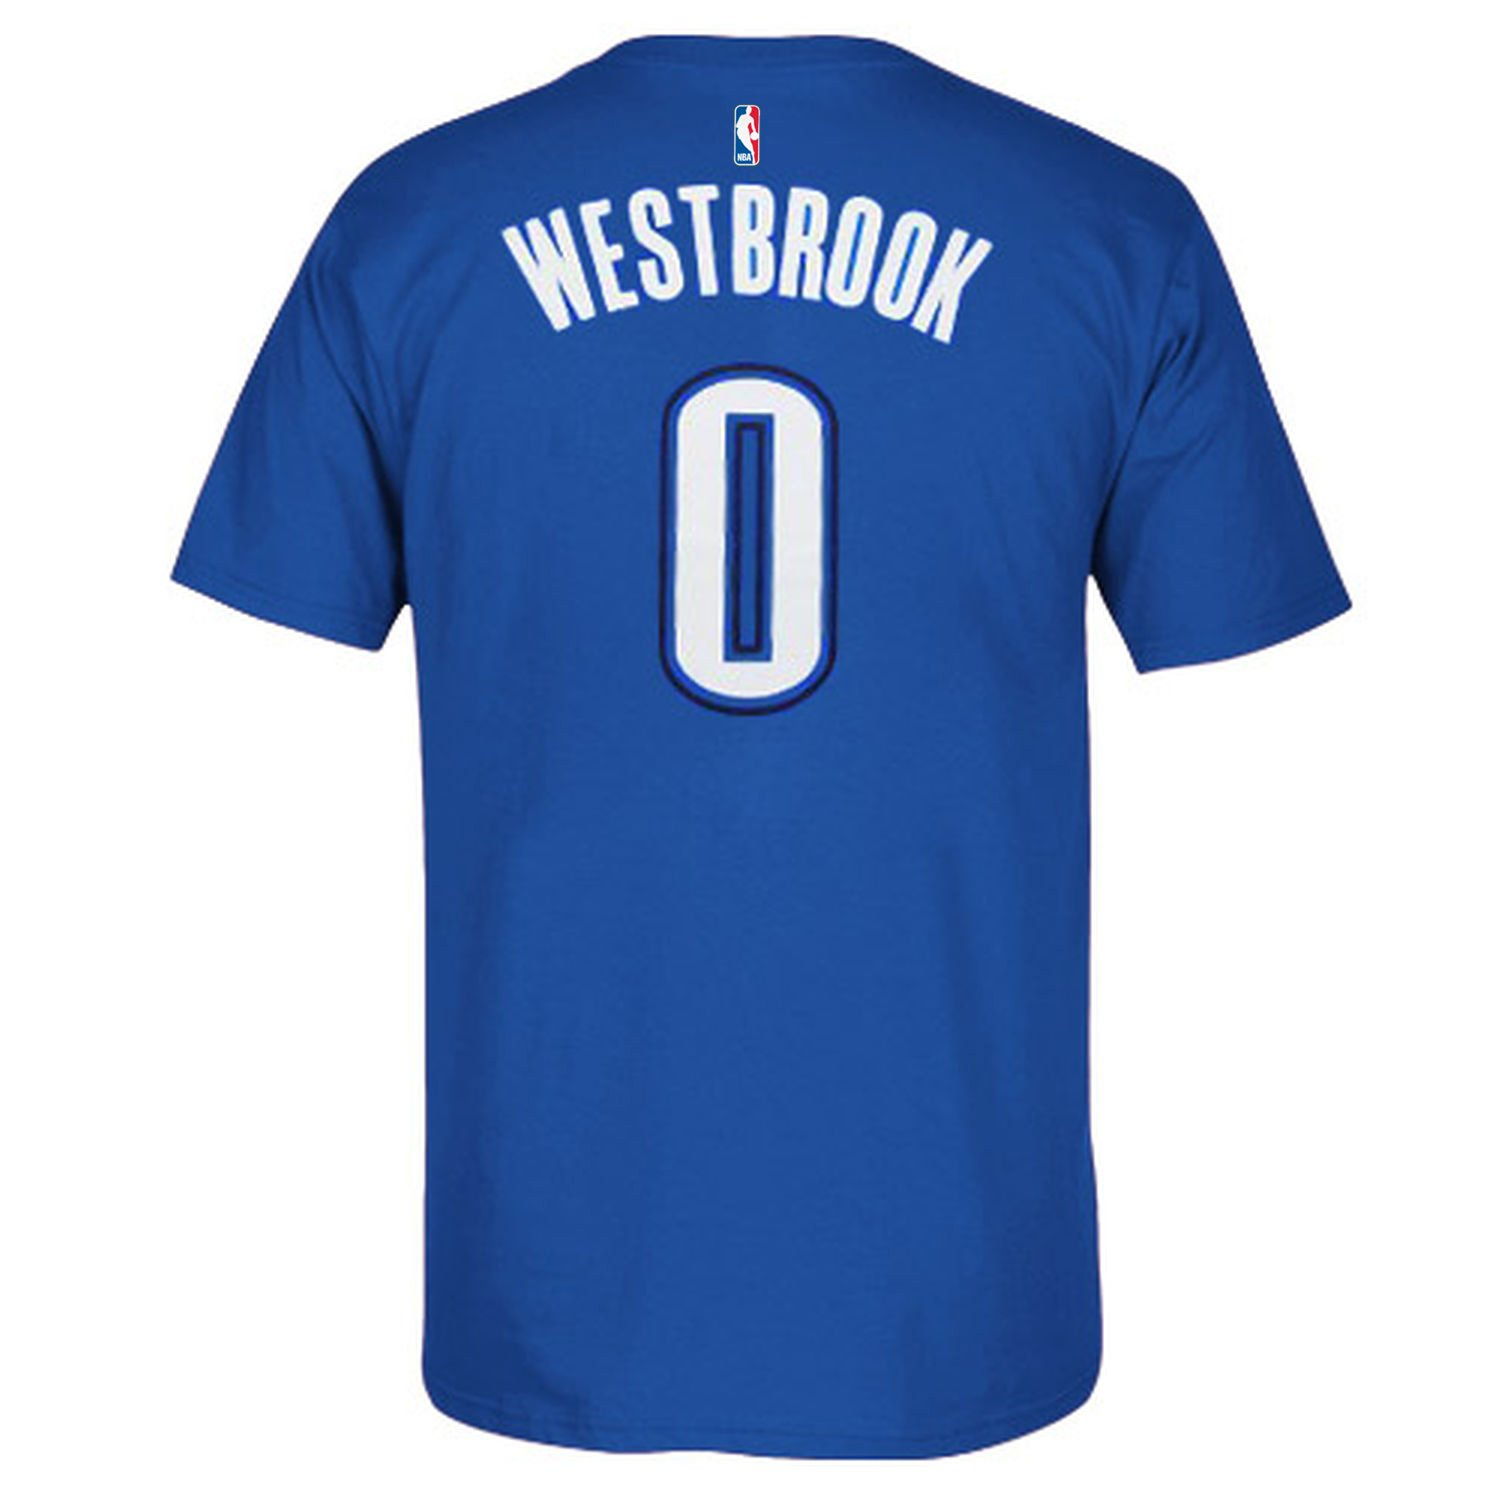 0e71f498a Amazon.com   NBA Youth 8-20 Performance Game Time Team Color Player Name  and Number Jersey T-Shirt (Small 8